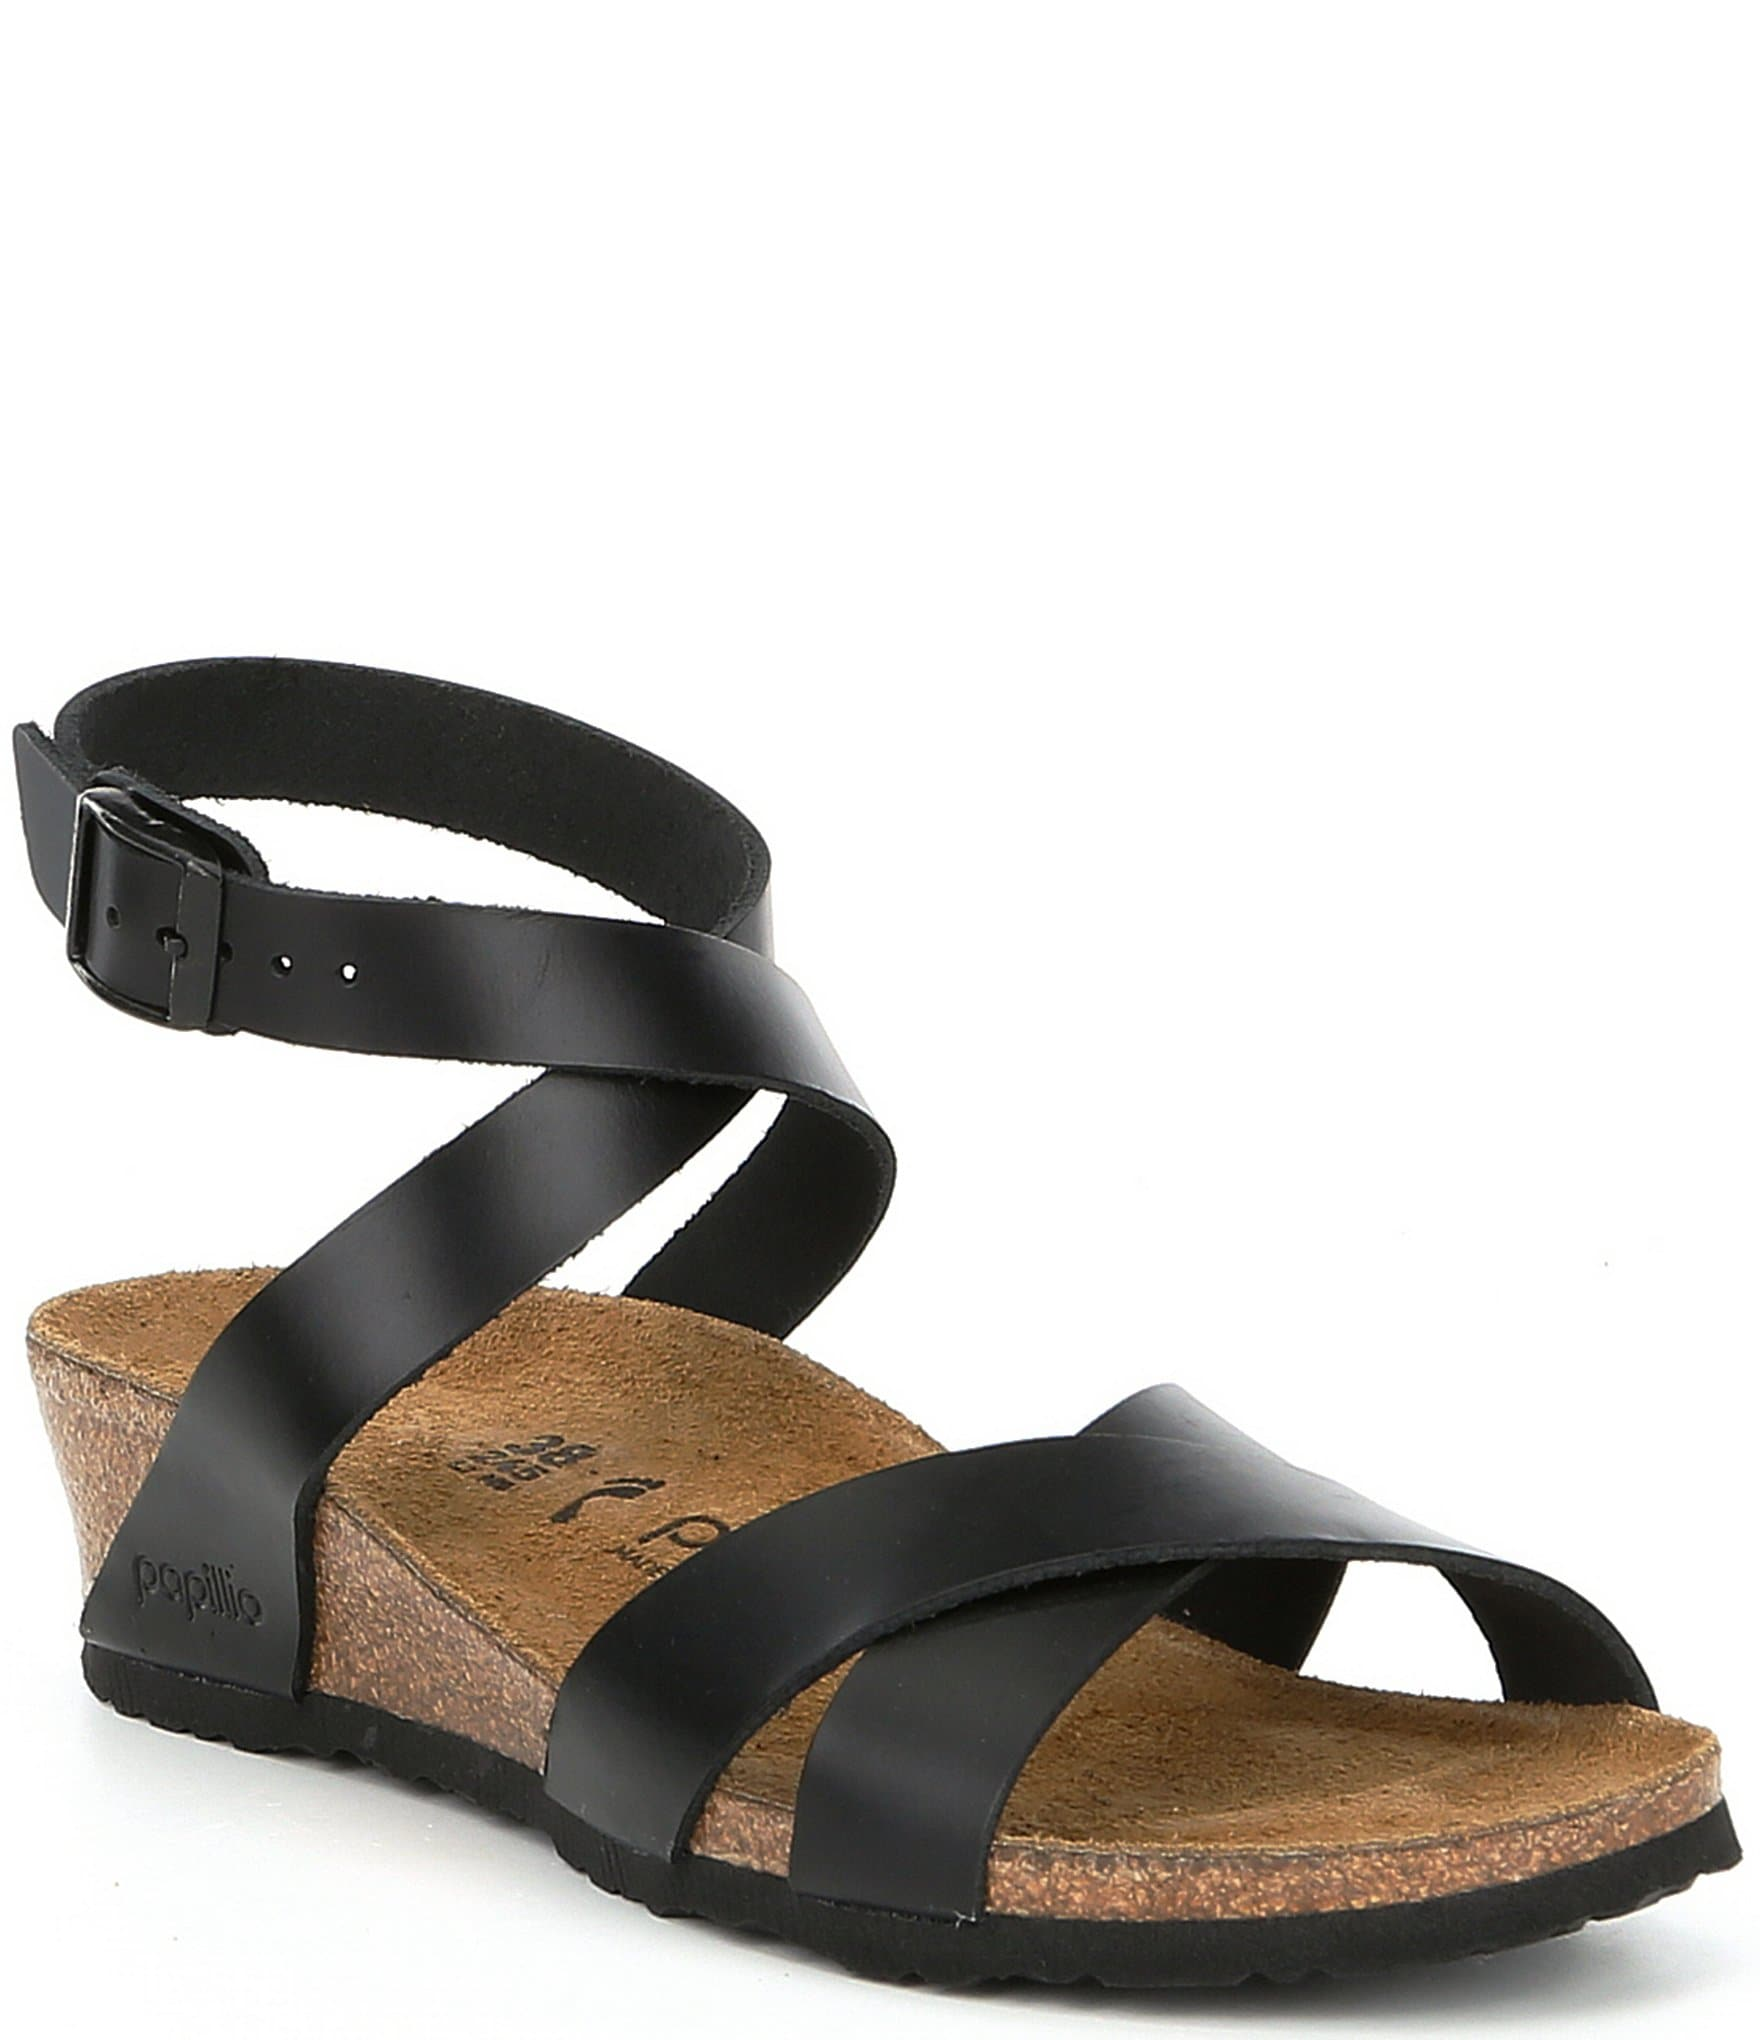 b057e3399cb Papillio by Birkenstock Lola Ankle Wrap Strap Wedge Sandals